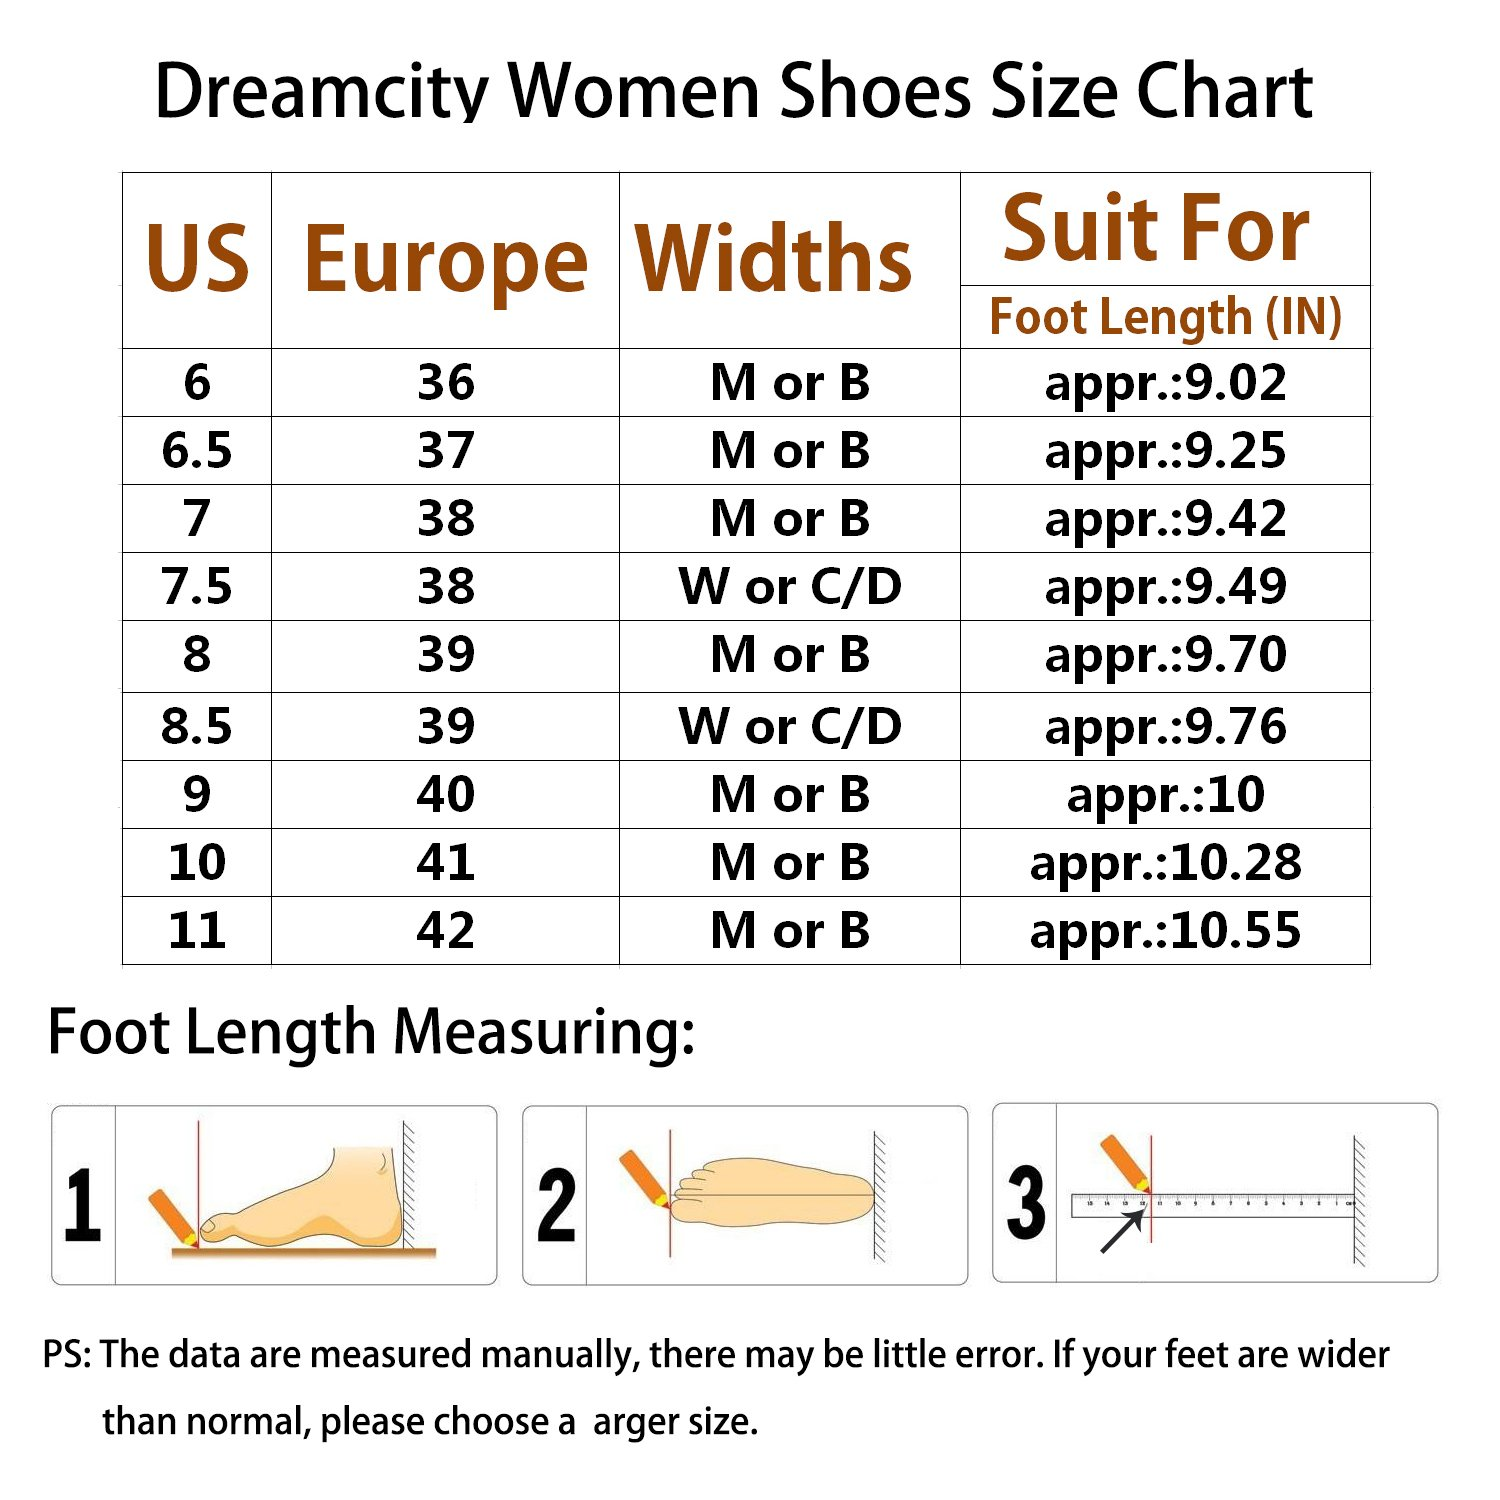 Dreamcity Shoes Women's Water Shoes Athletic Sport Lightweight Walking Shoes Dreamcity B06XR814CC 7 B(M) US,Navy 3e665b